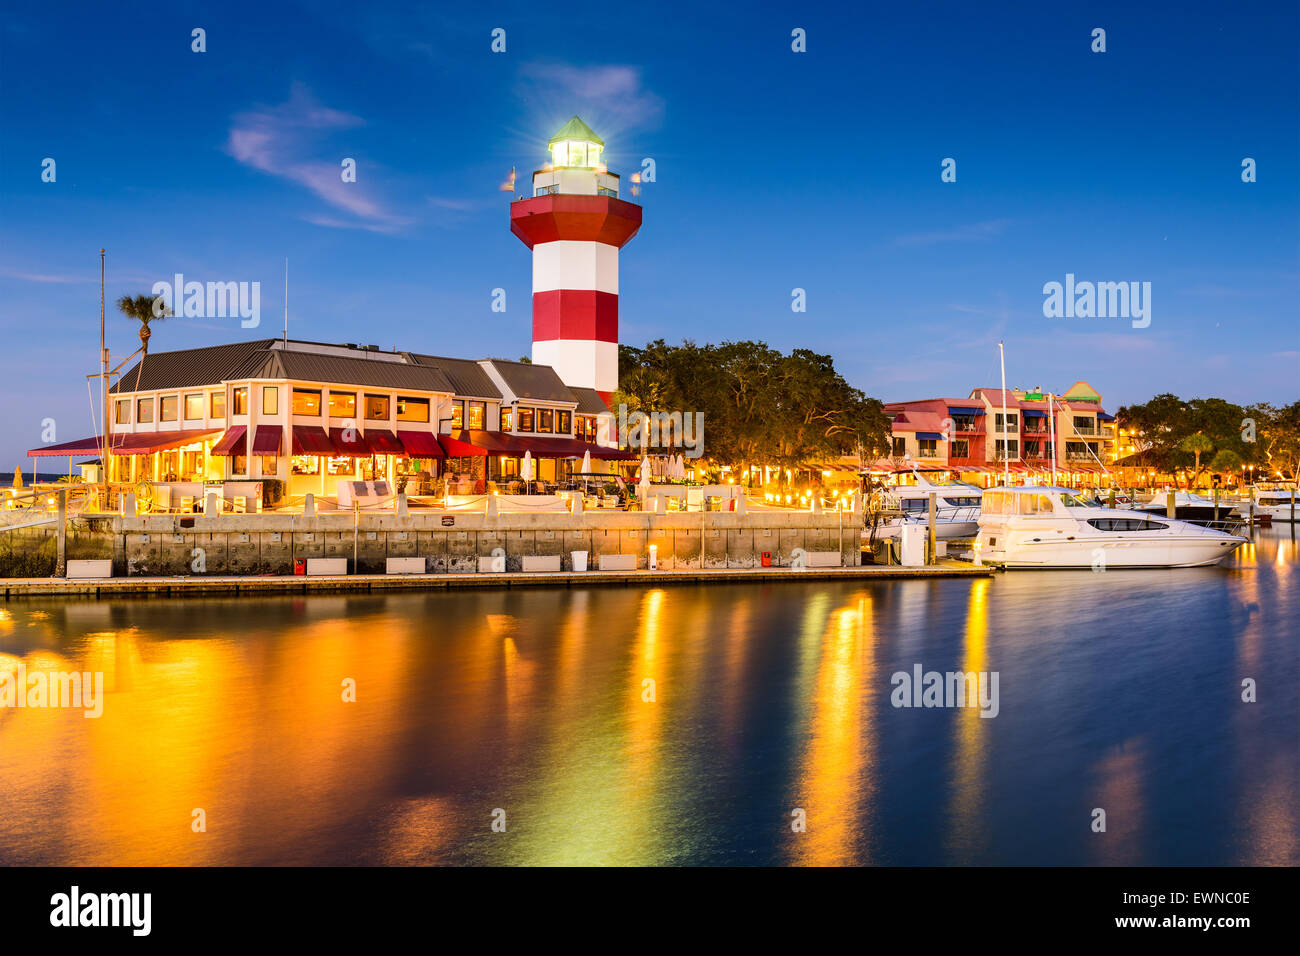 Hilton Head, South Carolina, lighthouse at twilight. - Stock Image